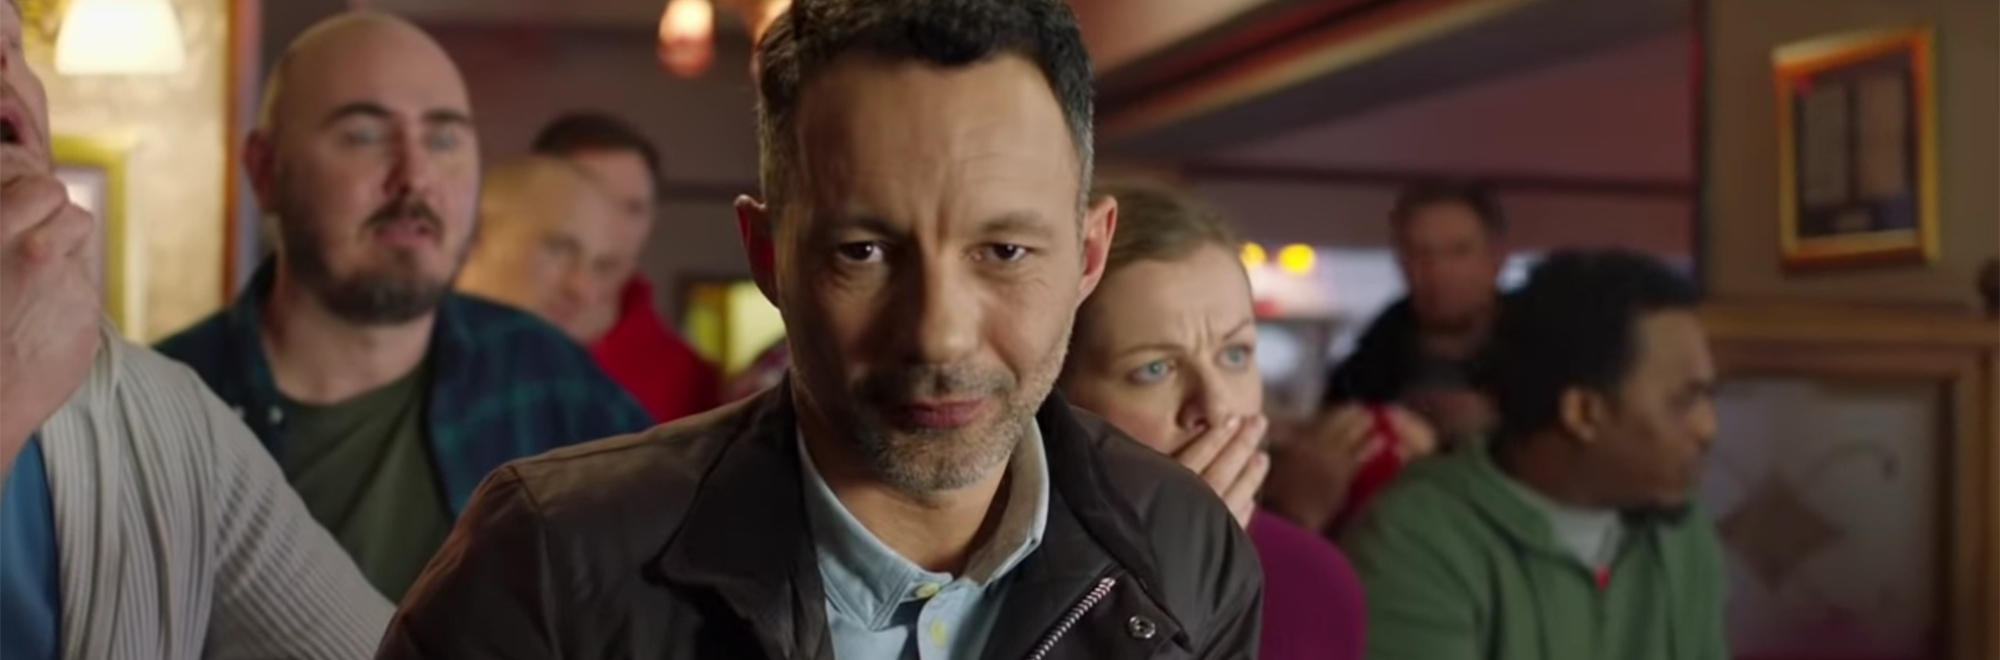 Oh Brother! Rhodri Giggs says 'loyalty is dead' in the latest Paddy Power campaign